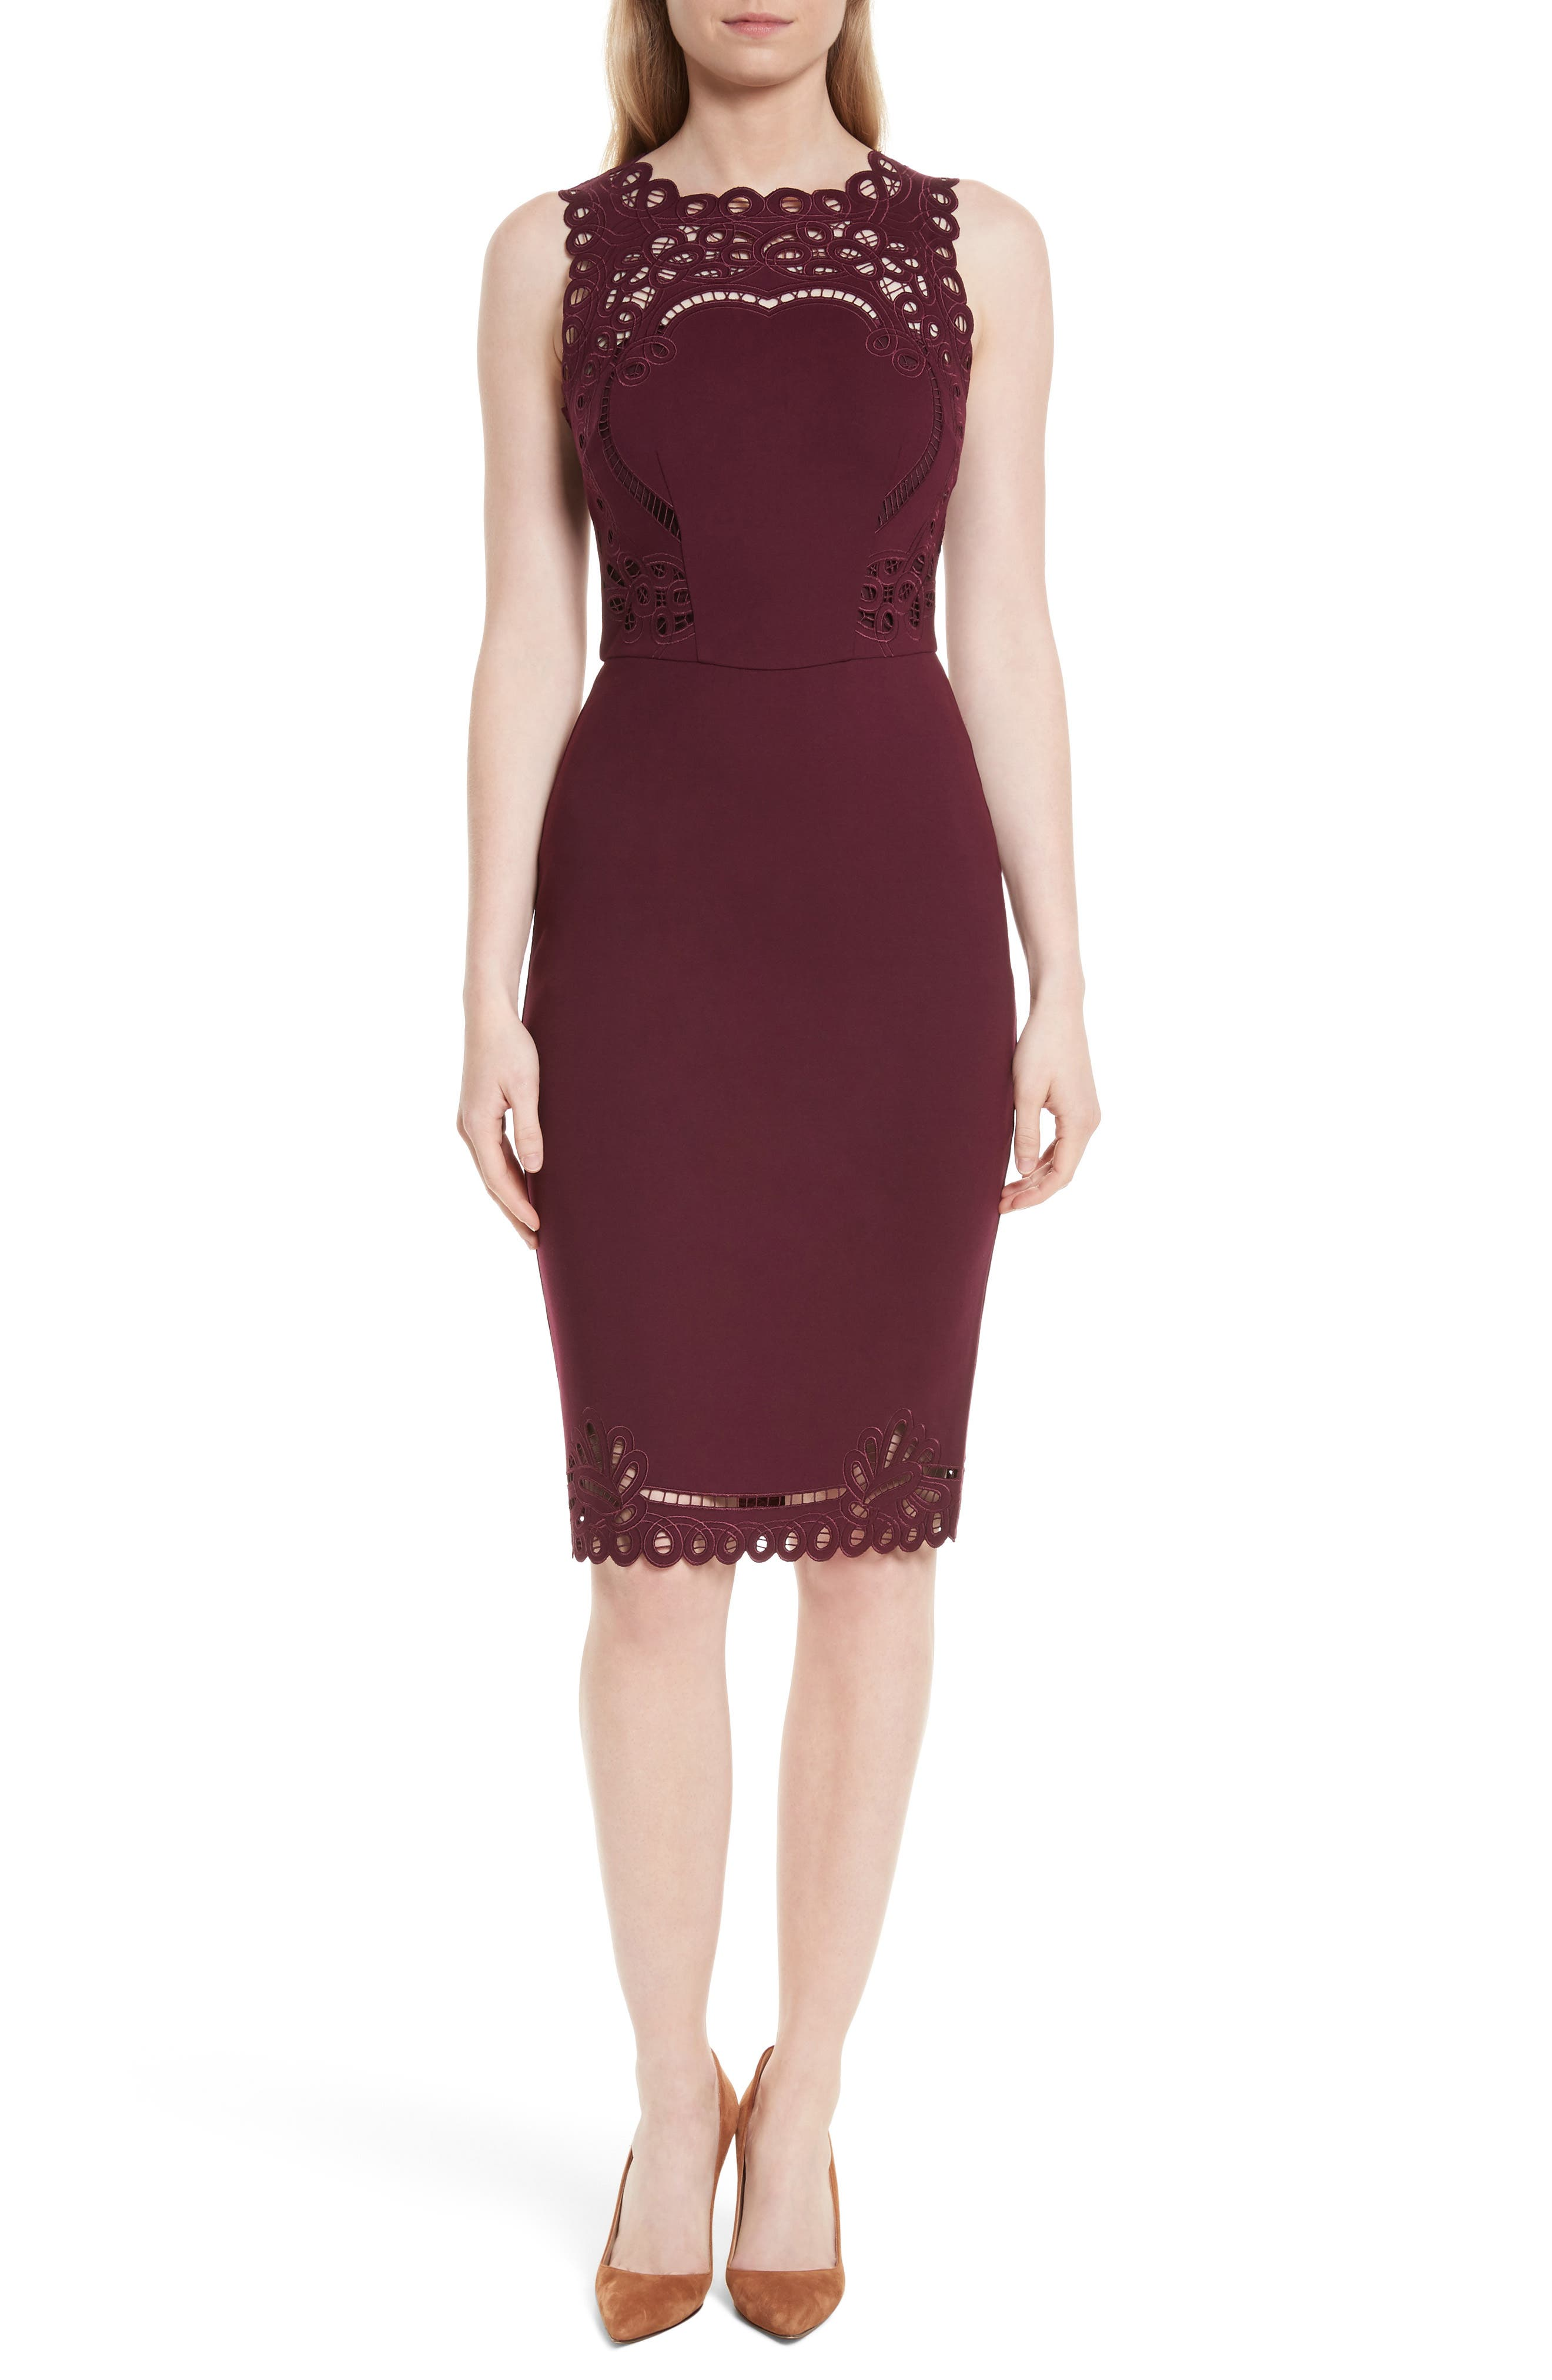 Verita Cutout Yoke Sheath Dress,                             Main thumbnail 1, color,                             930